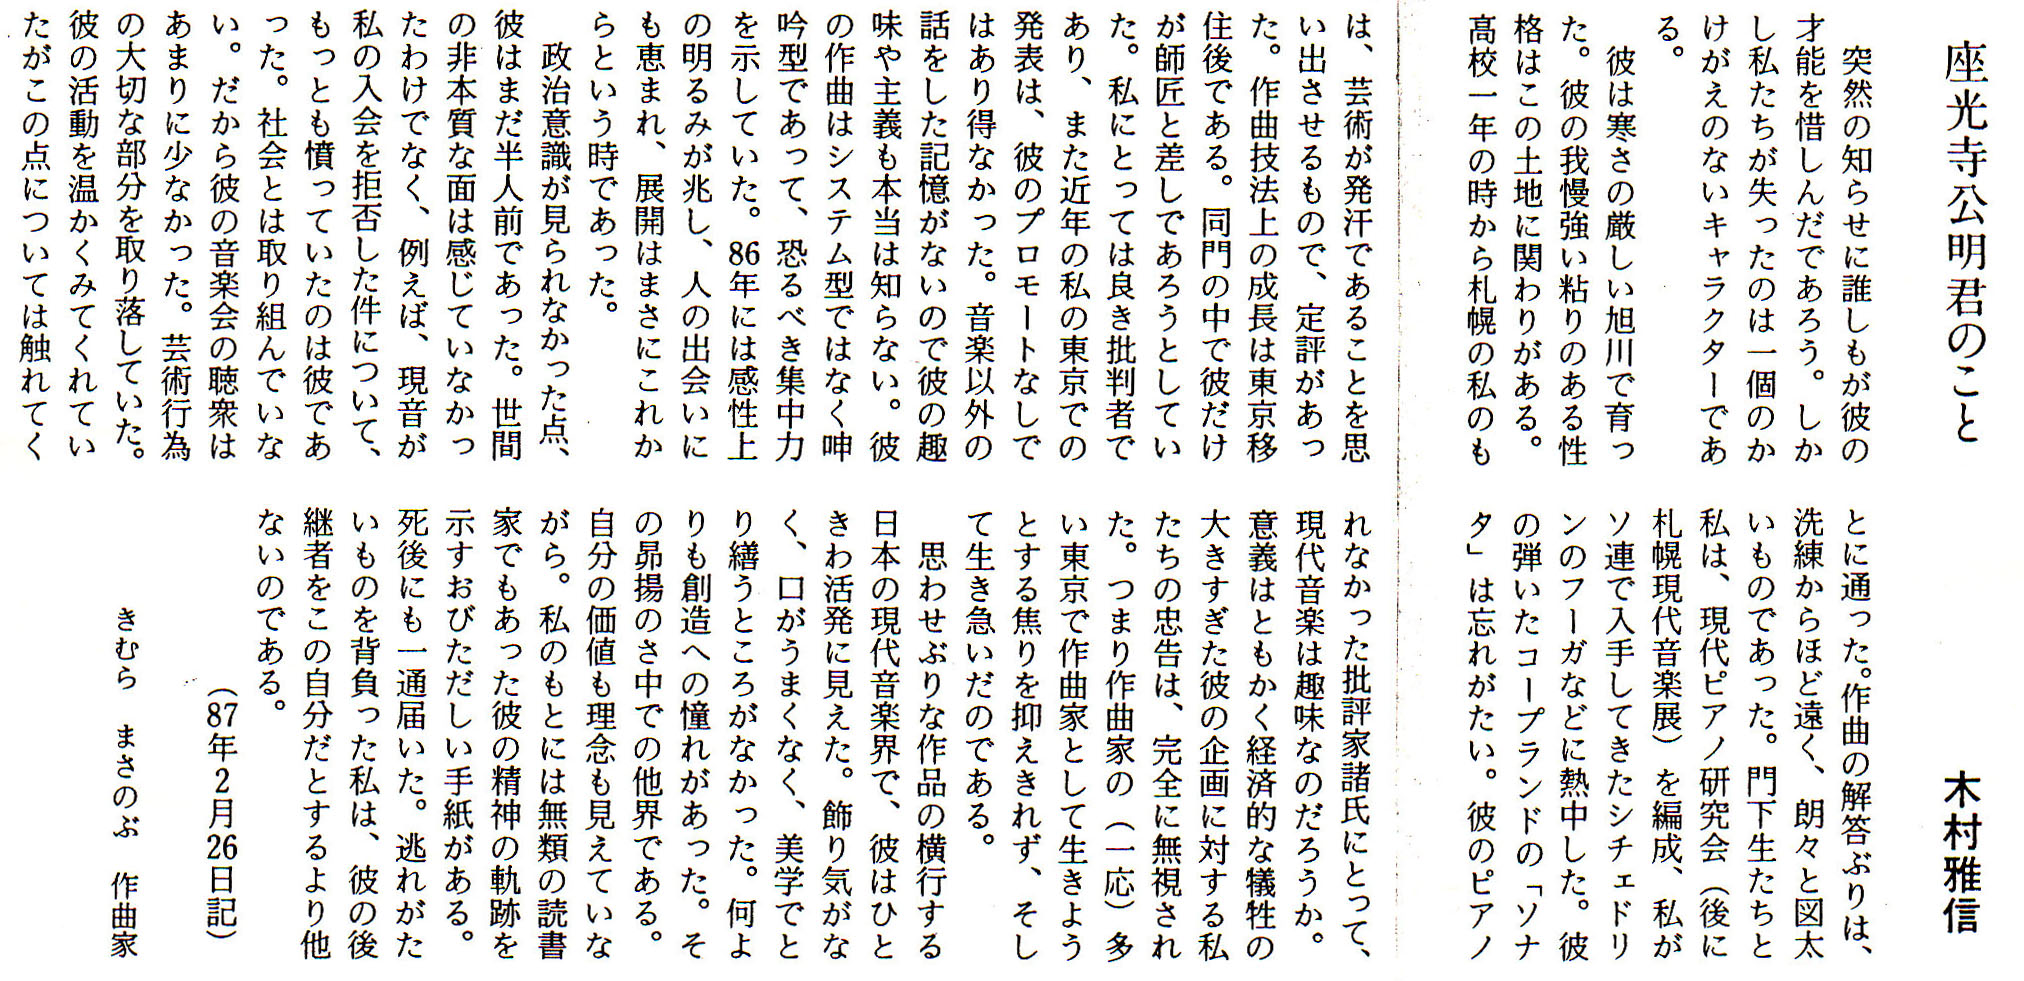 japanese essay writing An article about writing instruction by kazumi kimura and masako kondo about efl composition for japanese.